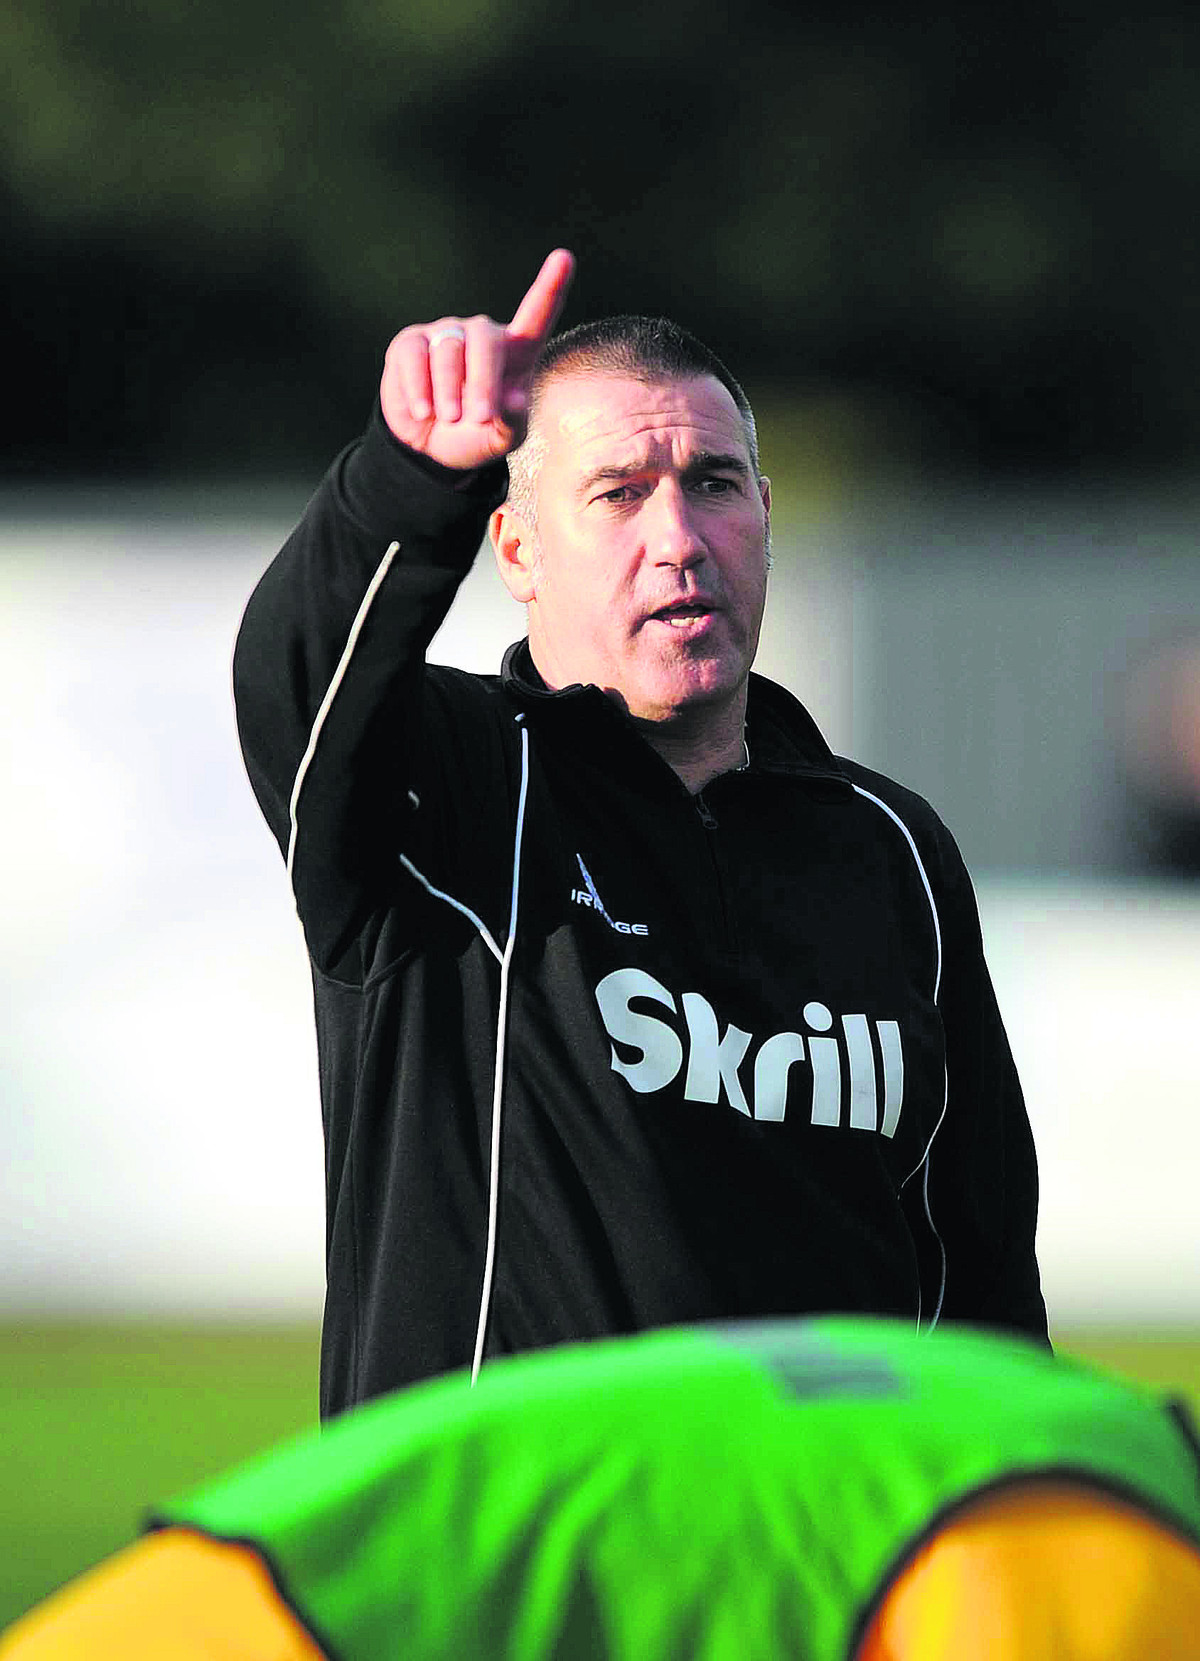 Oxford City boss Mike Ford wants Mark Bell to keep up his good form at Leamington